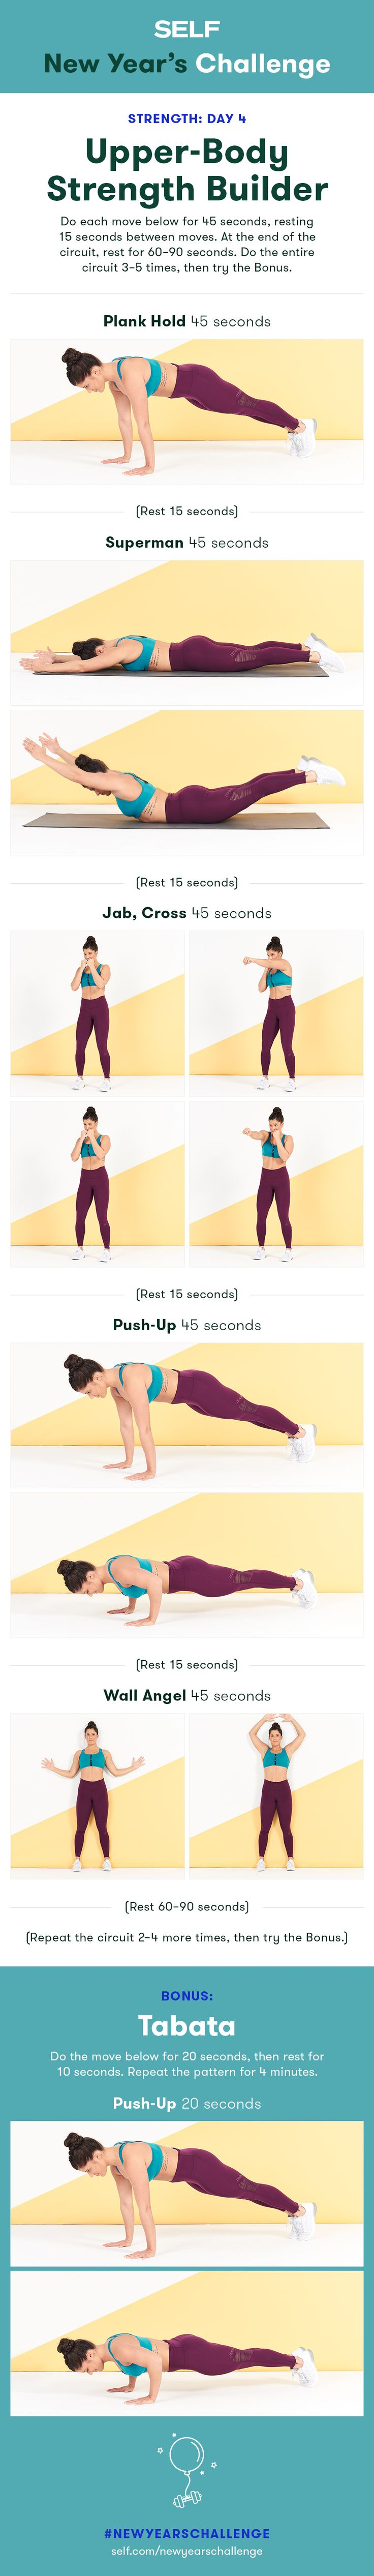 Welcome to our #NewYearsChallenge! Try this upper body strength workout for women with planks, supermans, and push-ups for strong arms and shoulders!